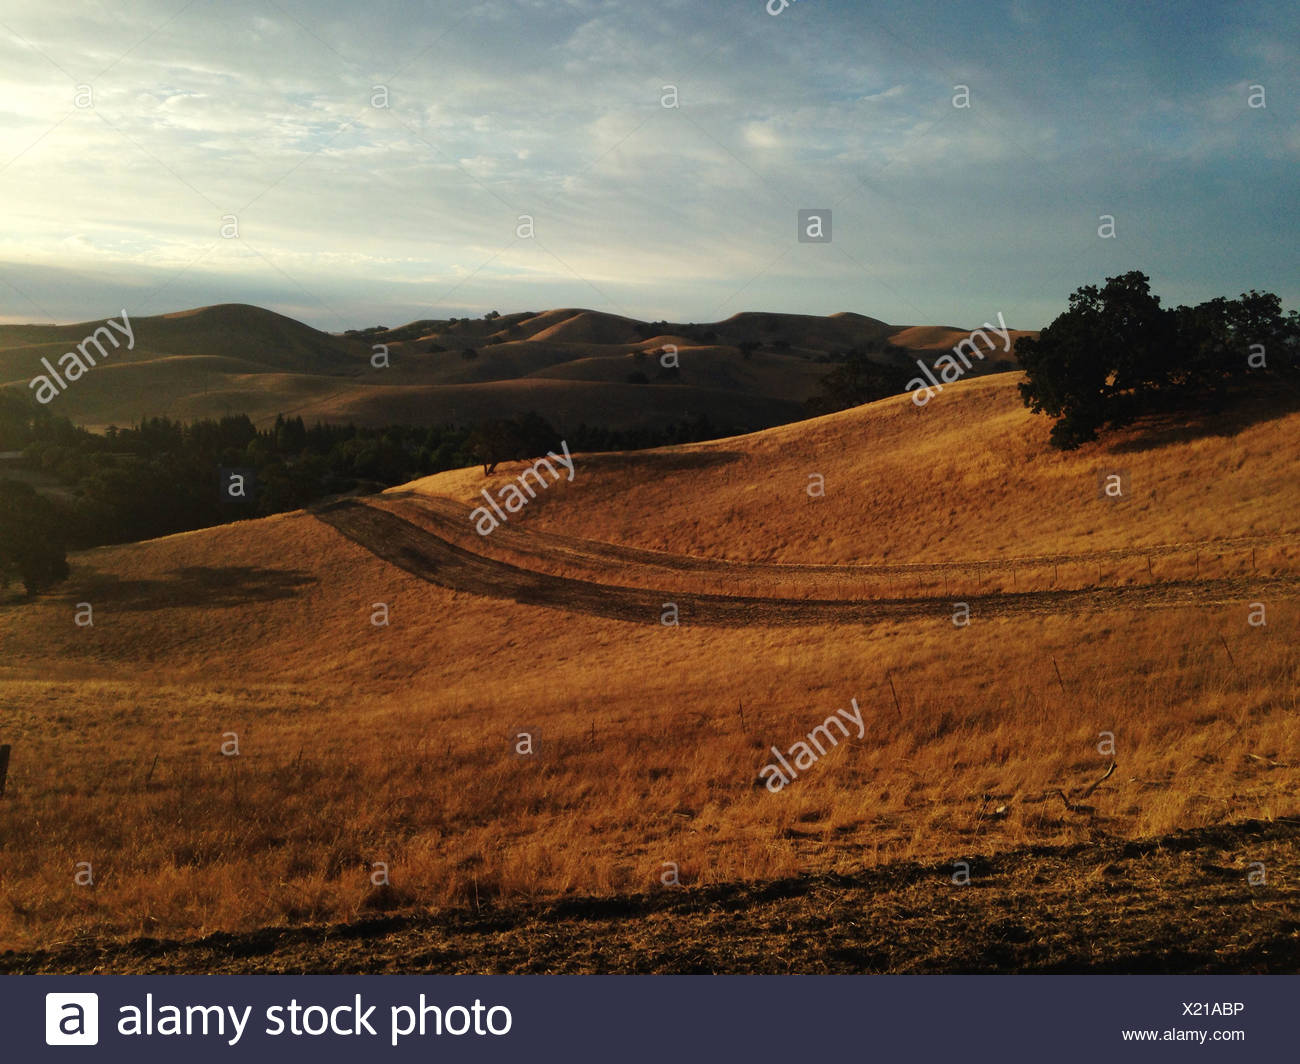 USA, California, Sunset over rolling landscape - Stock Image